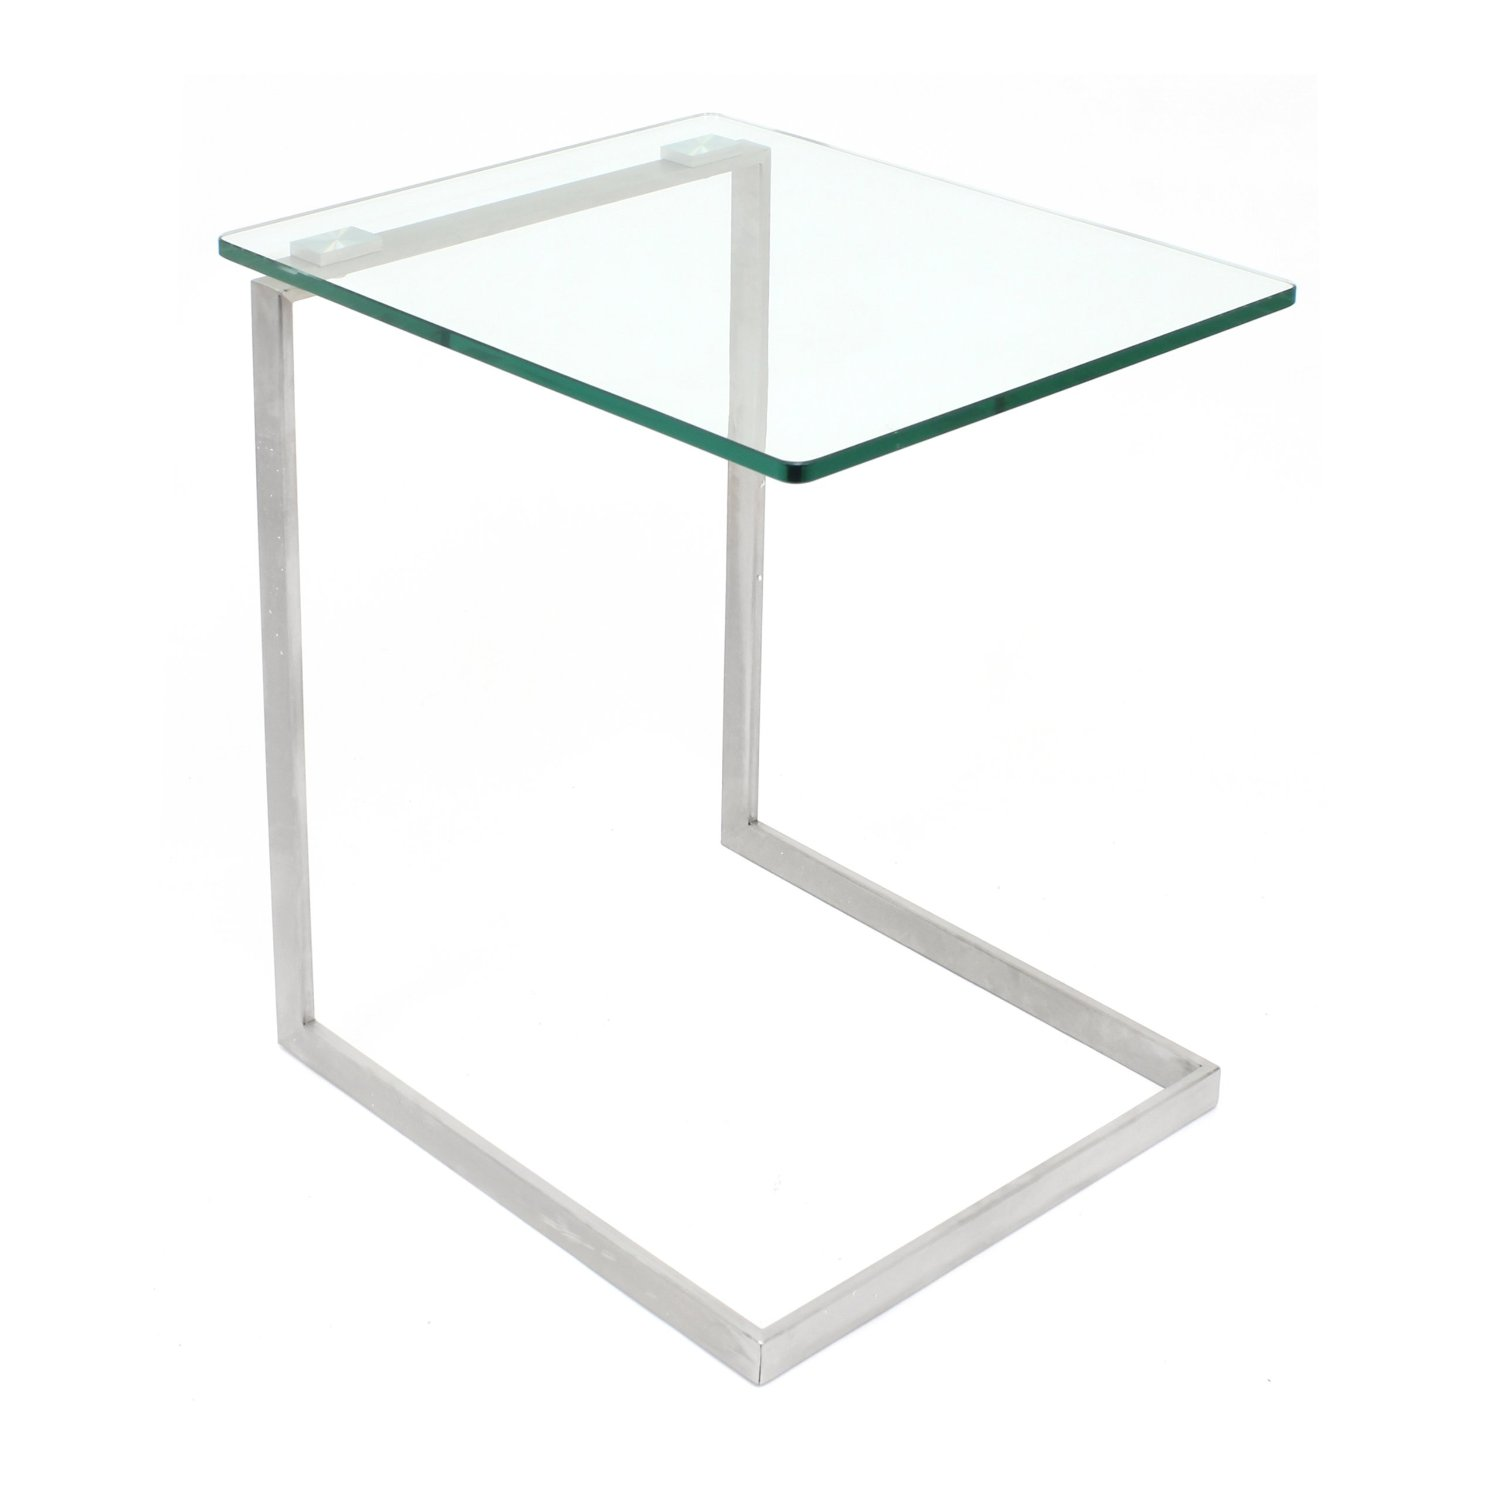 LumiSource glass table.jpg